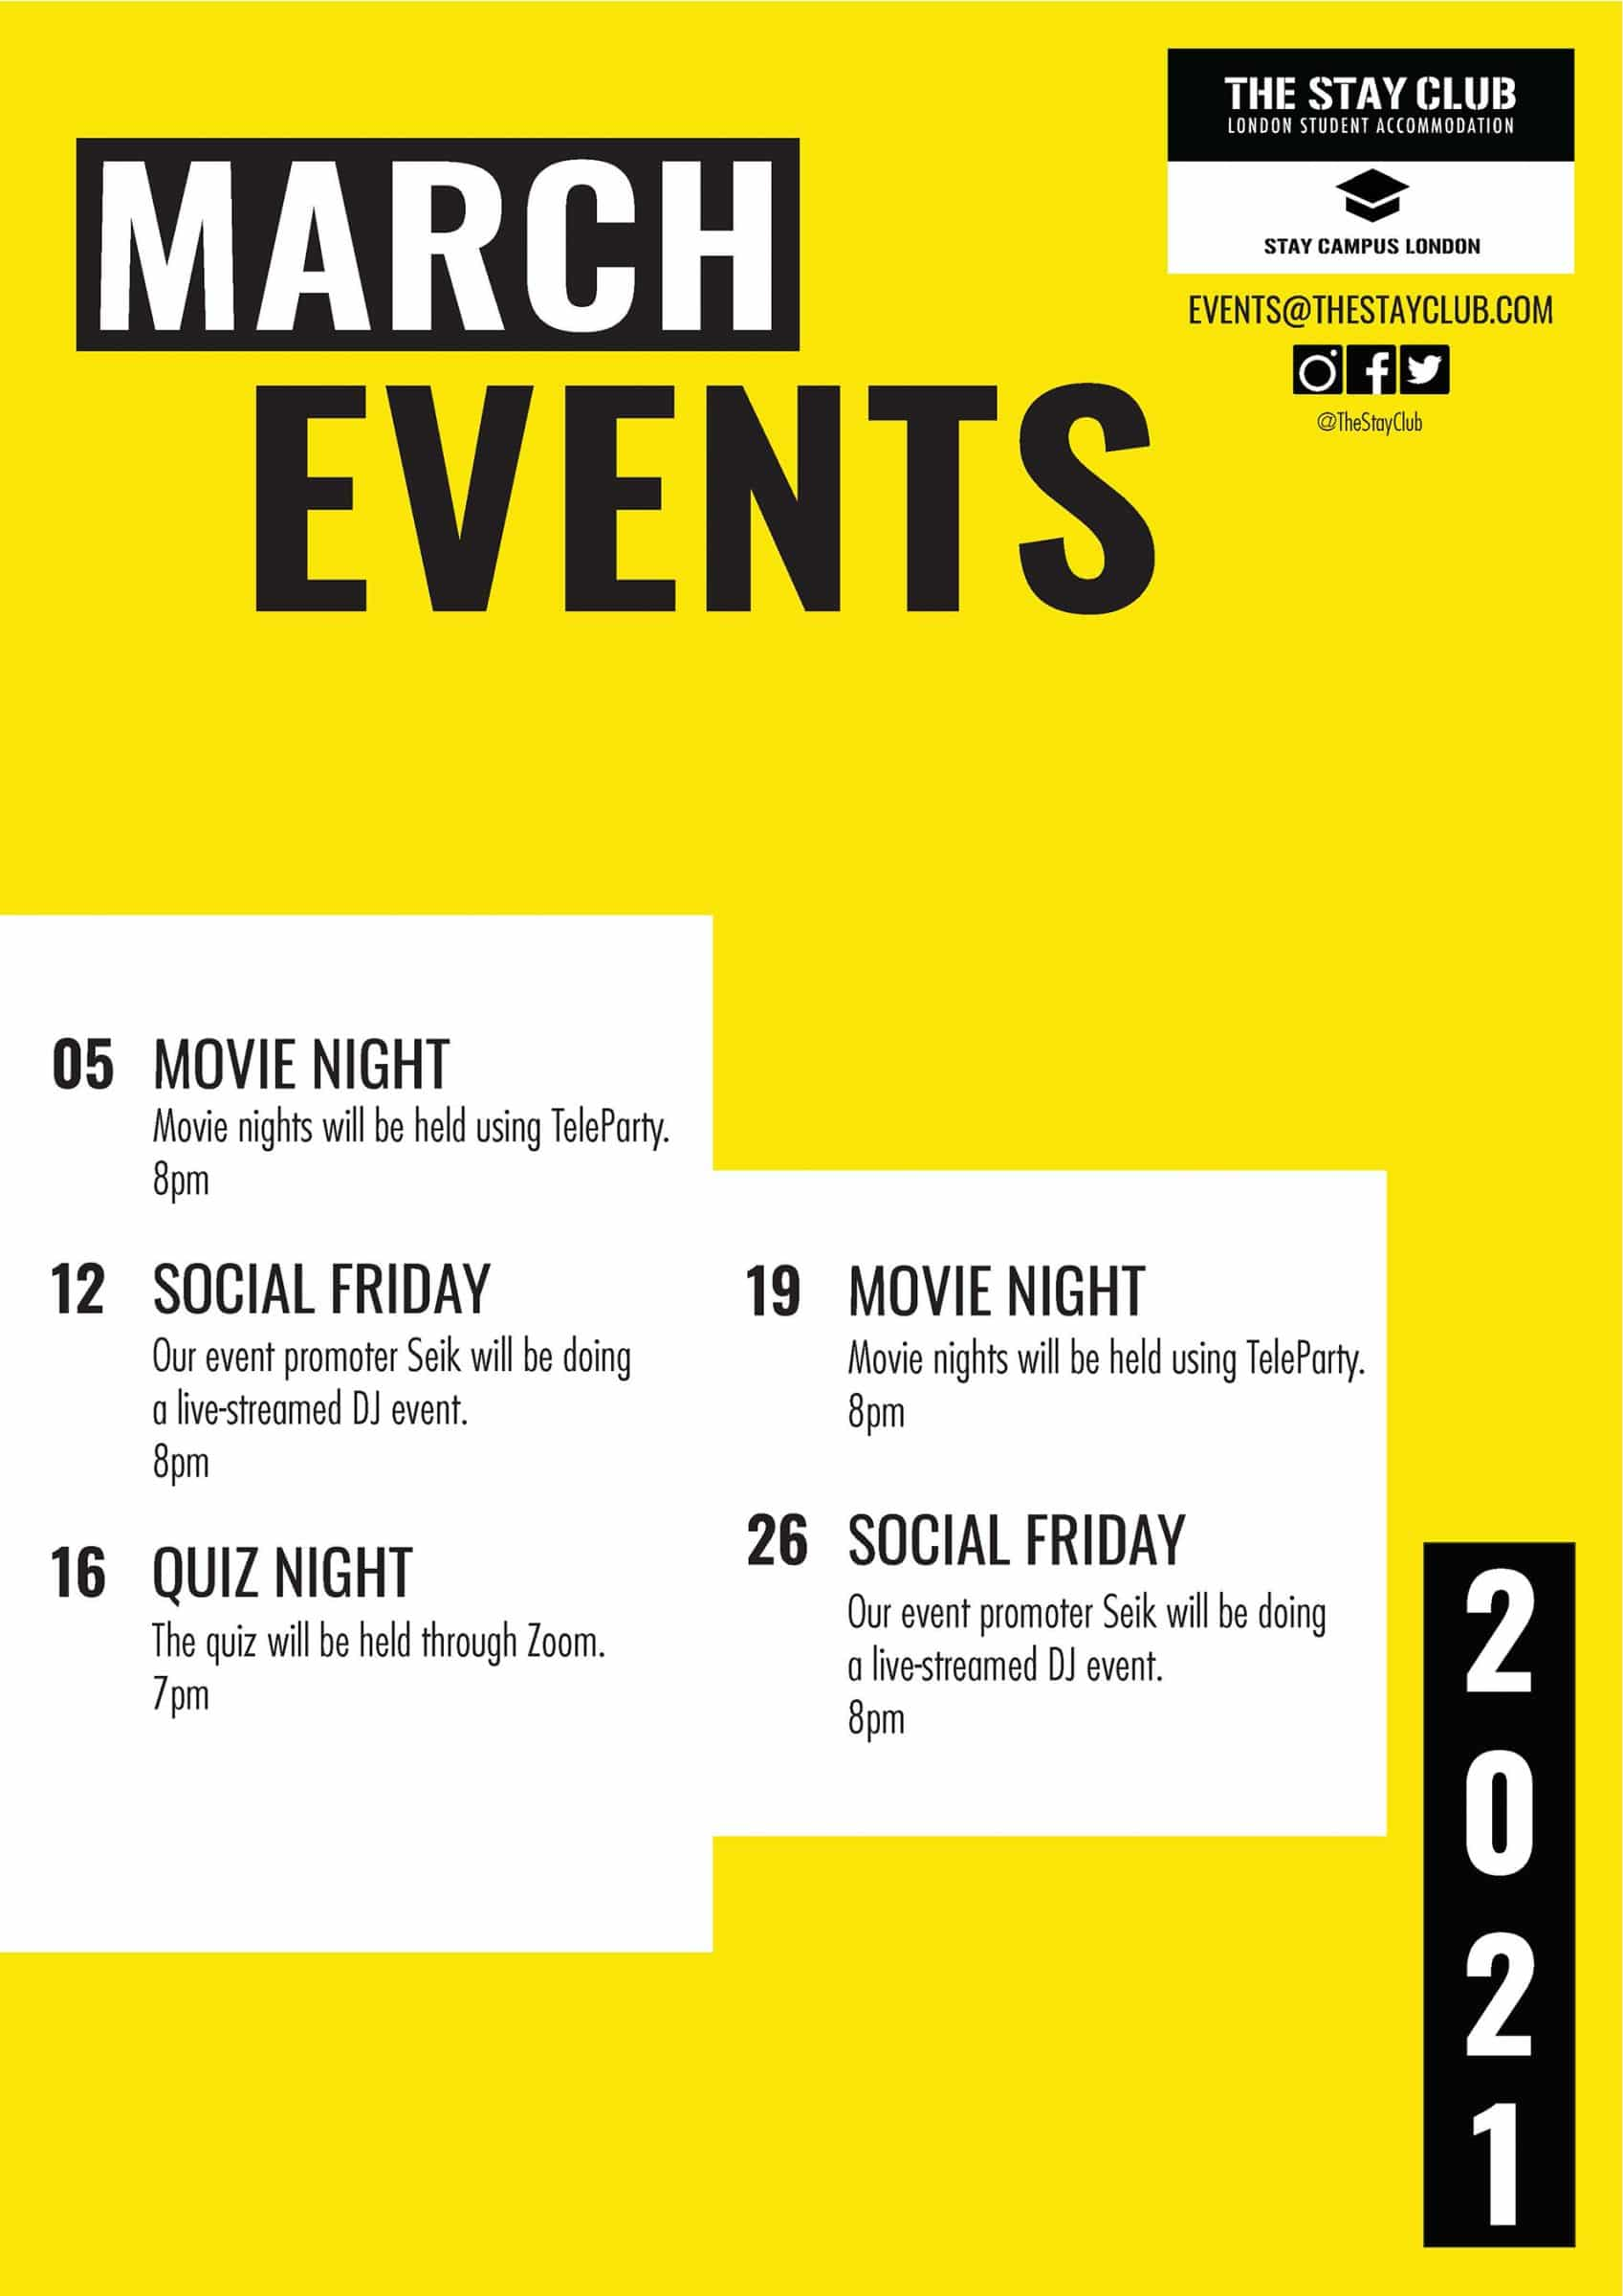 The Stay Club - Events